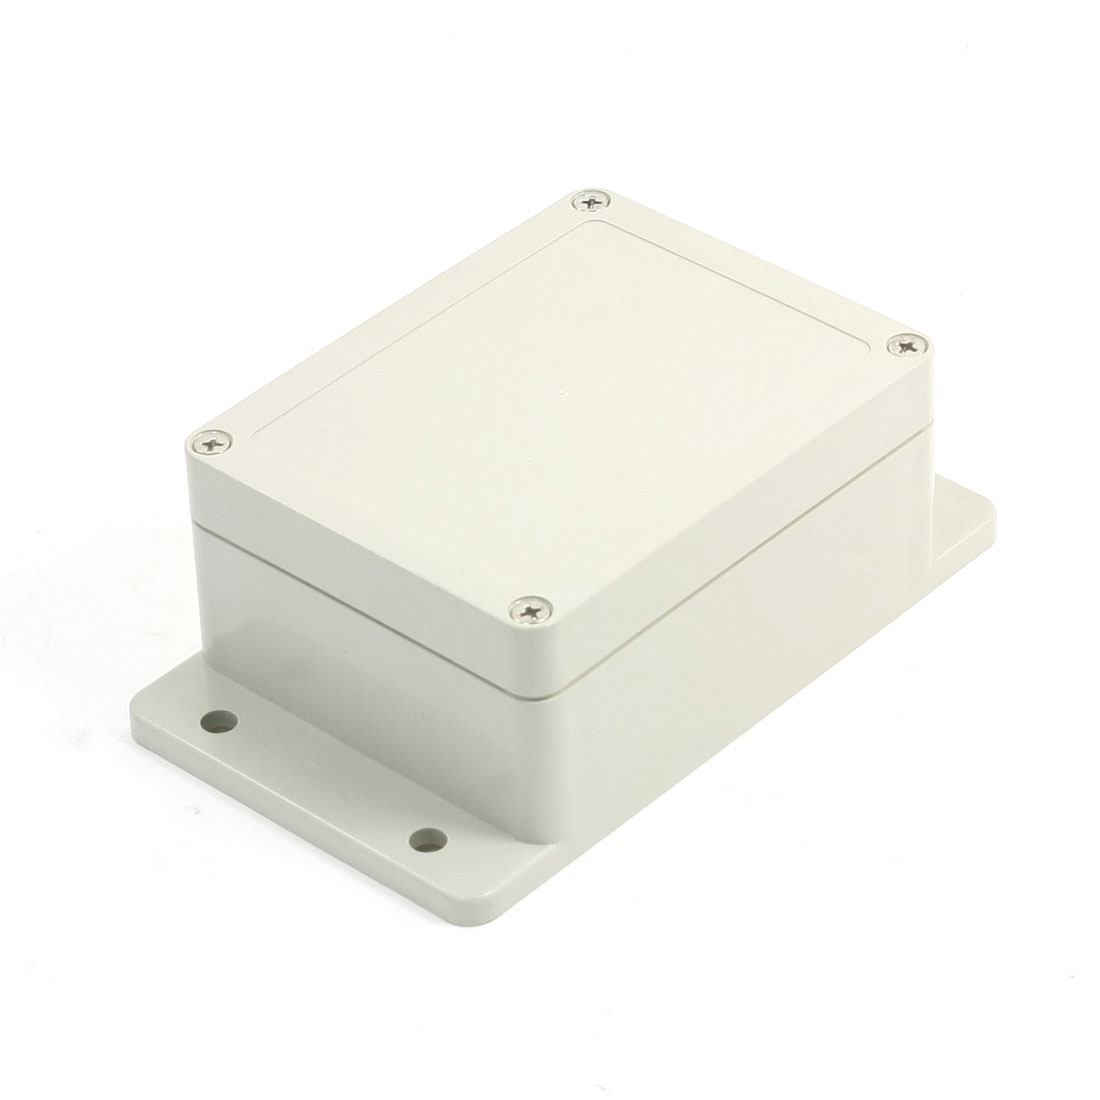 115mmx90mmx55mm Cable Connect Waterproof Plastic Case Junction Box